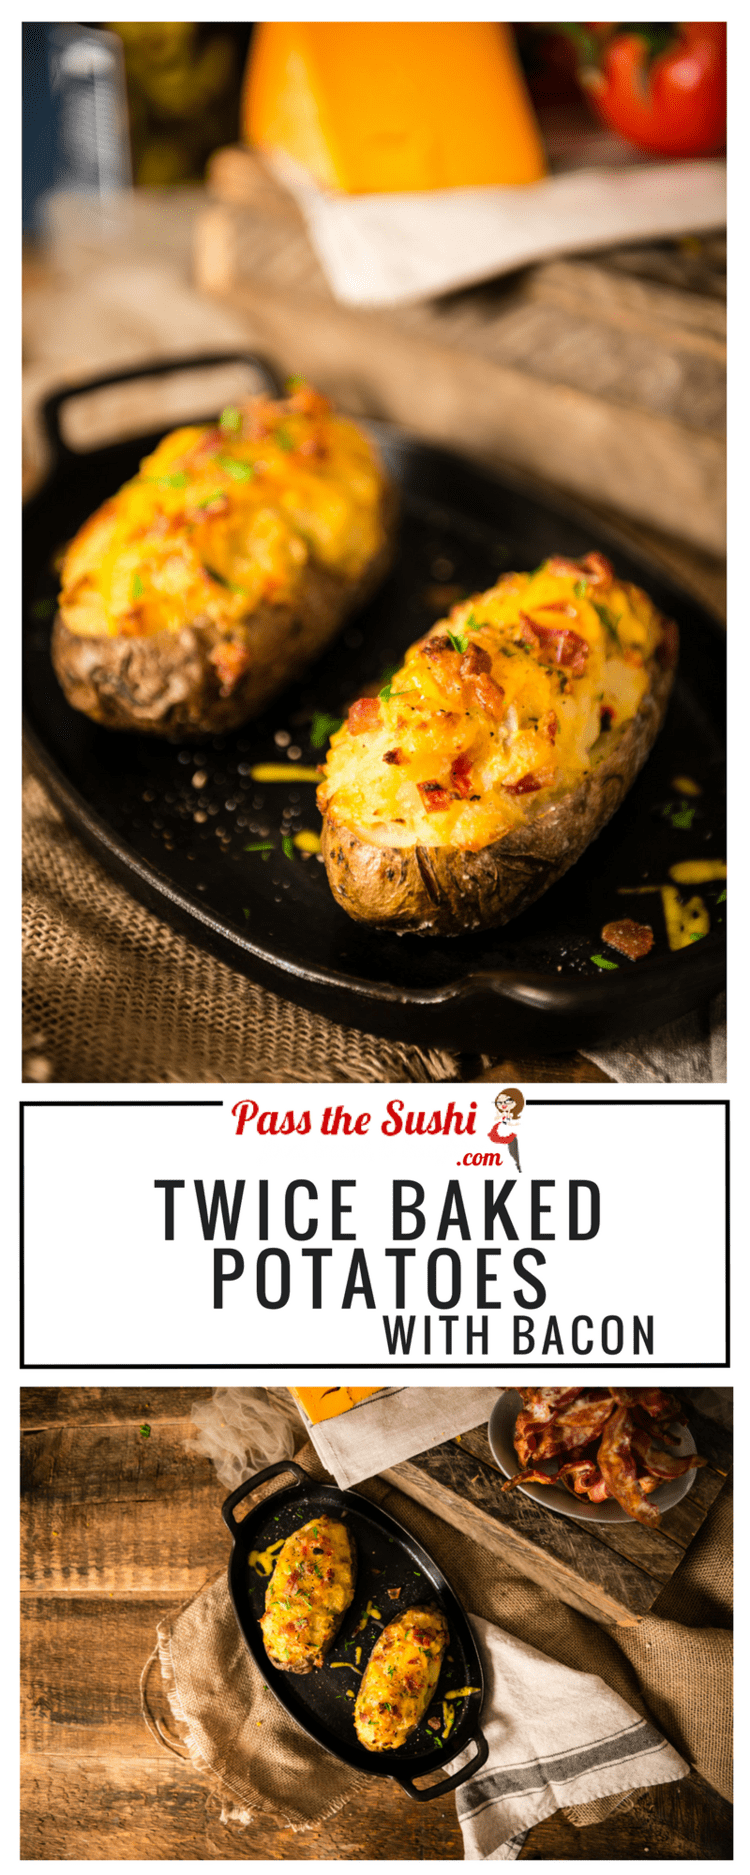 A perfect recipe for Twice Baked Potatoes with Bacon with everything you want. Crispy skin and fluffy filling loaded with cheesy goodness.